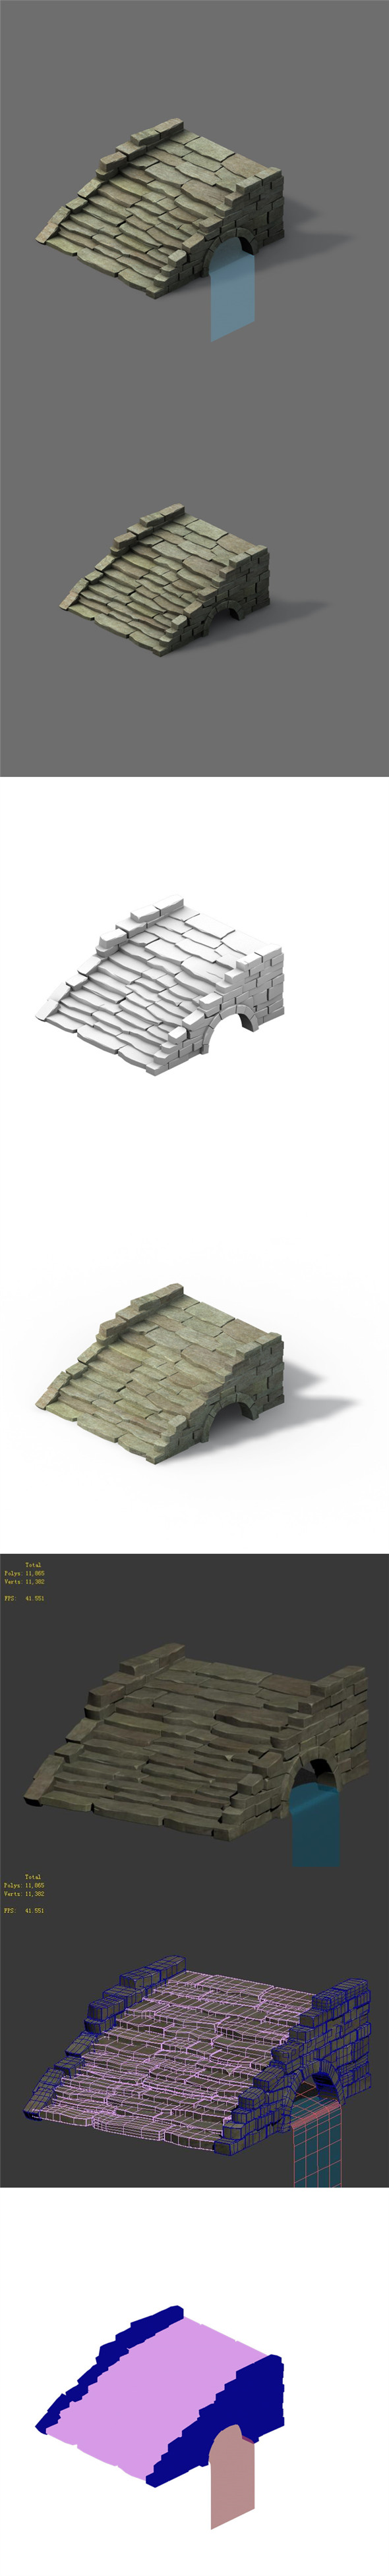 Mountain - terrain stone staircase 03 - 3DOcean Item for Sale